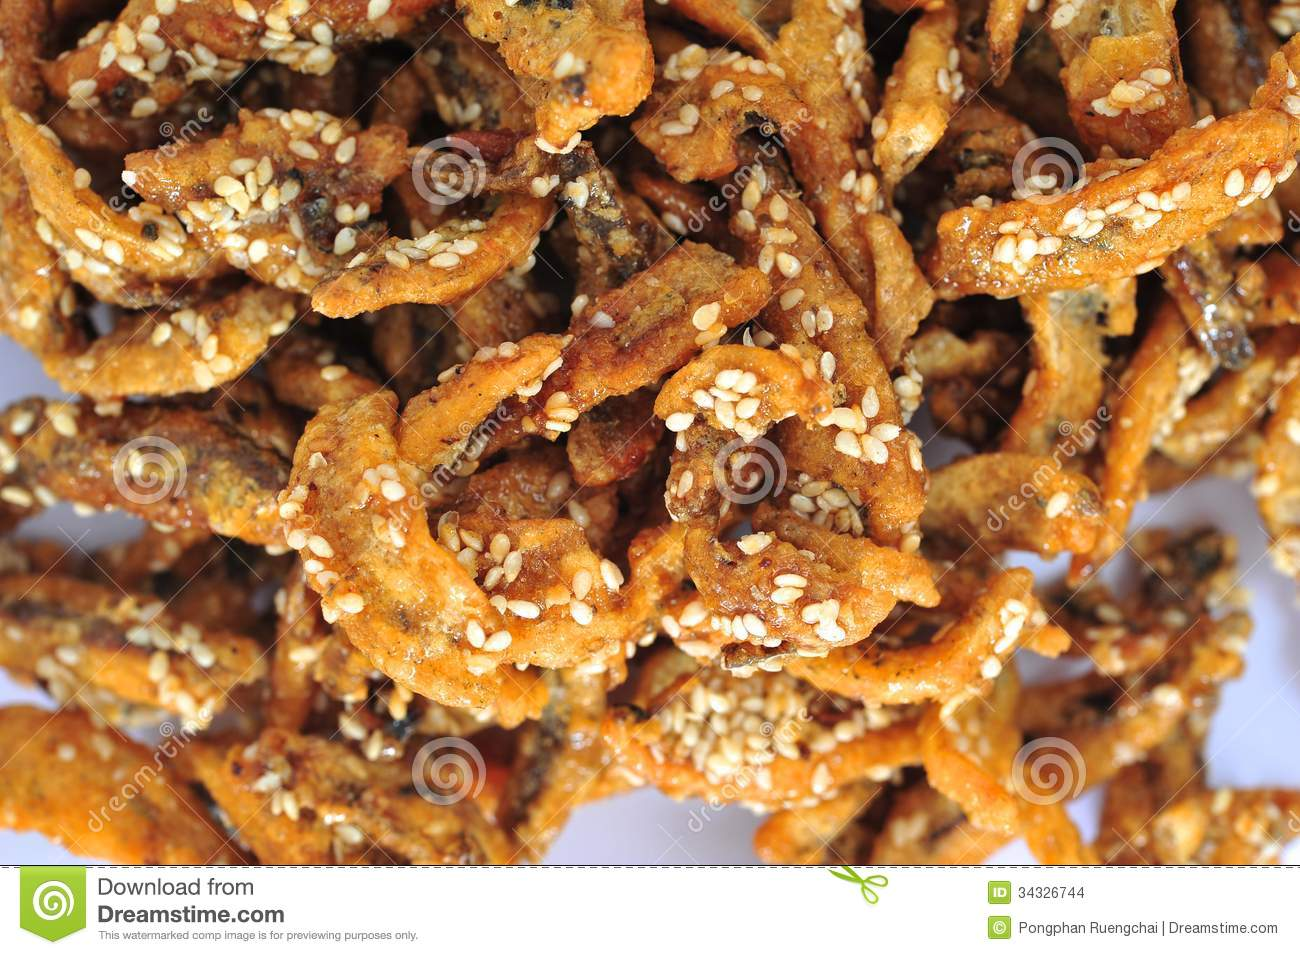 Fried Anchovies Stock Images - Image: 34326744